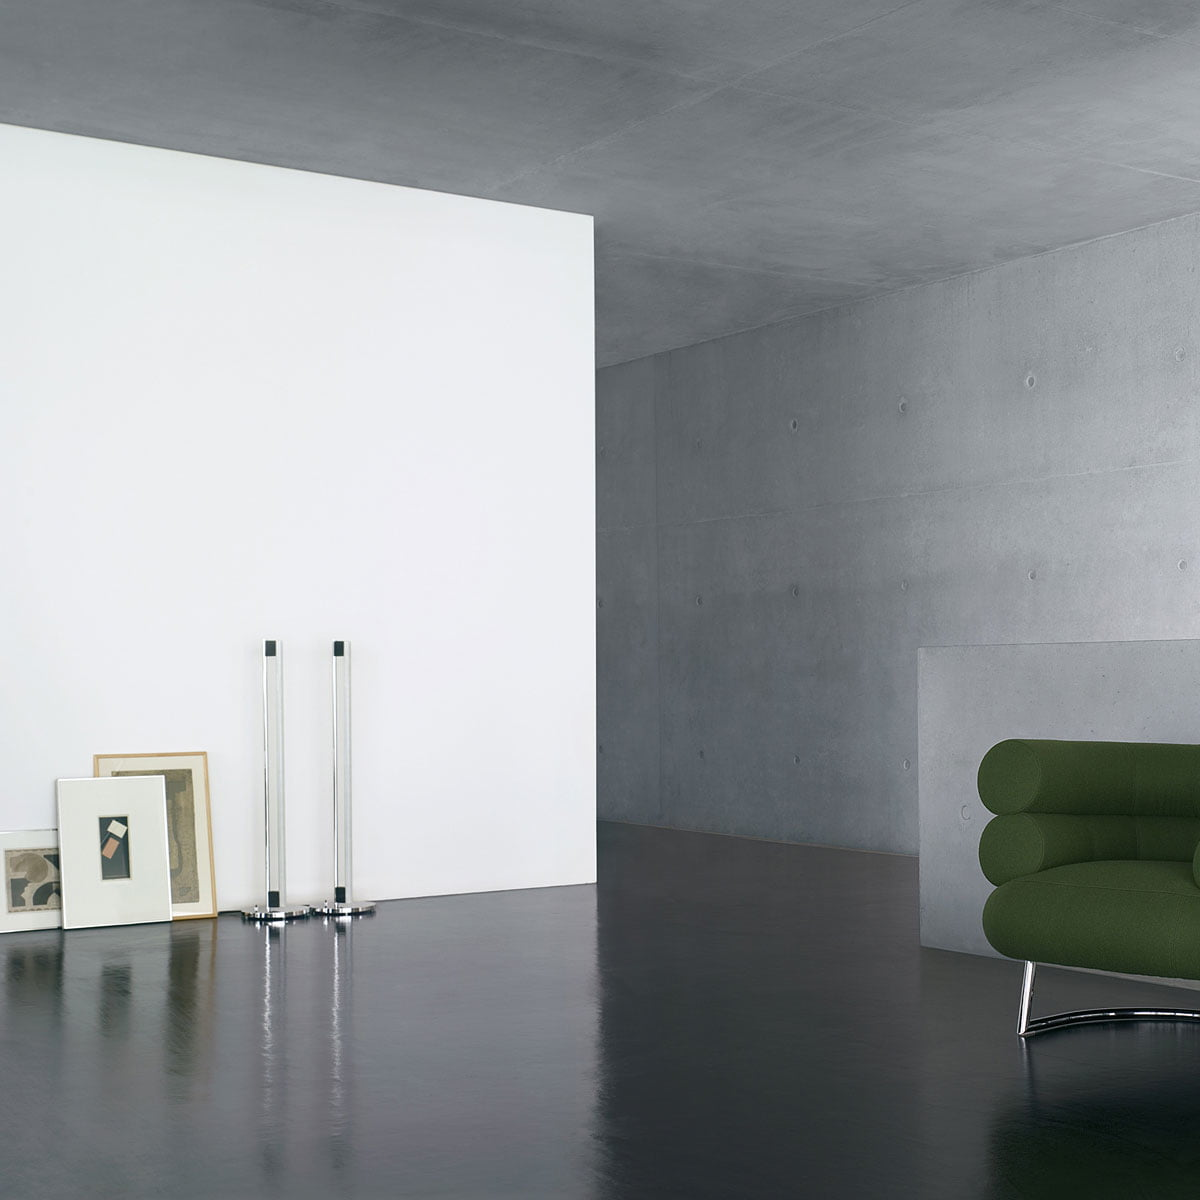 Floor lamp by classicon in the shop classicon tube light led floor lamp aloadofball Image collections